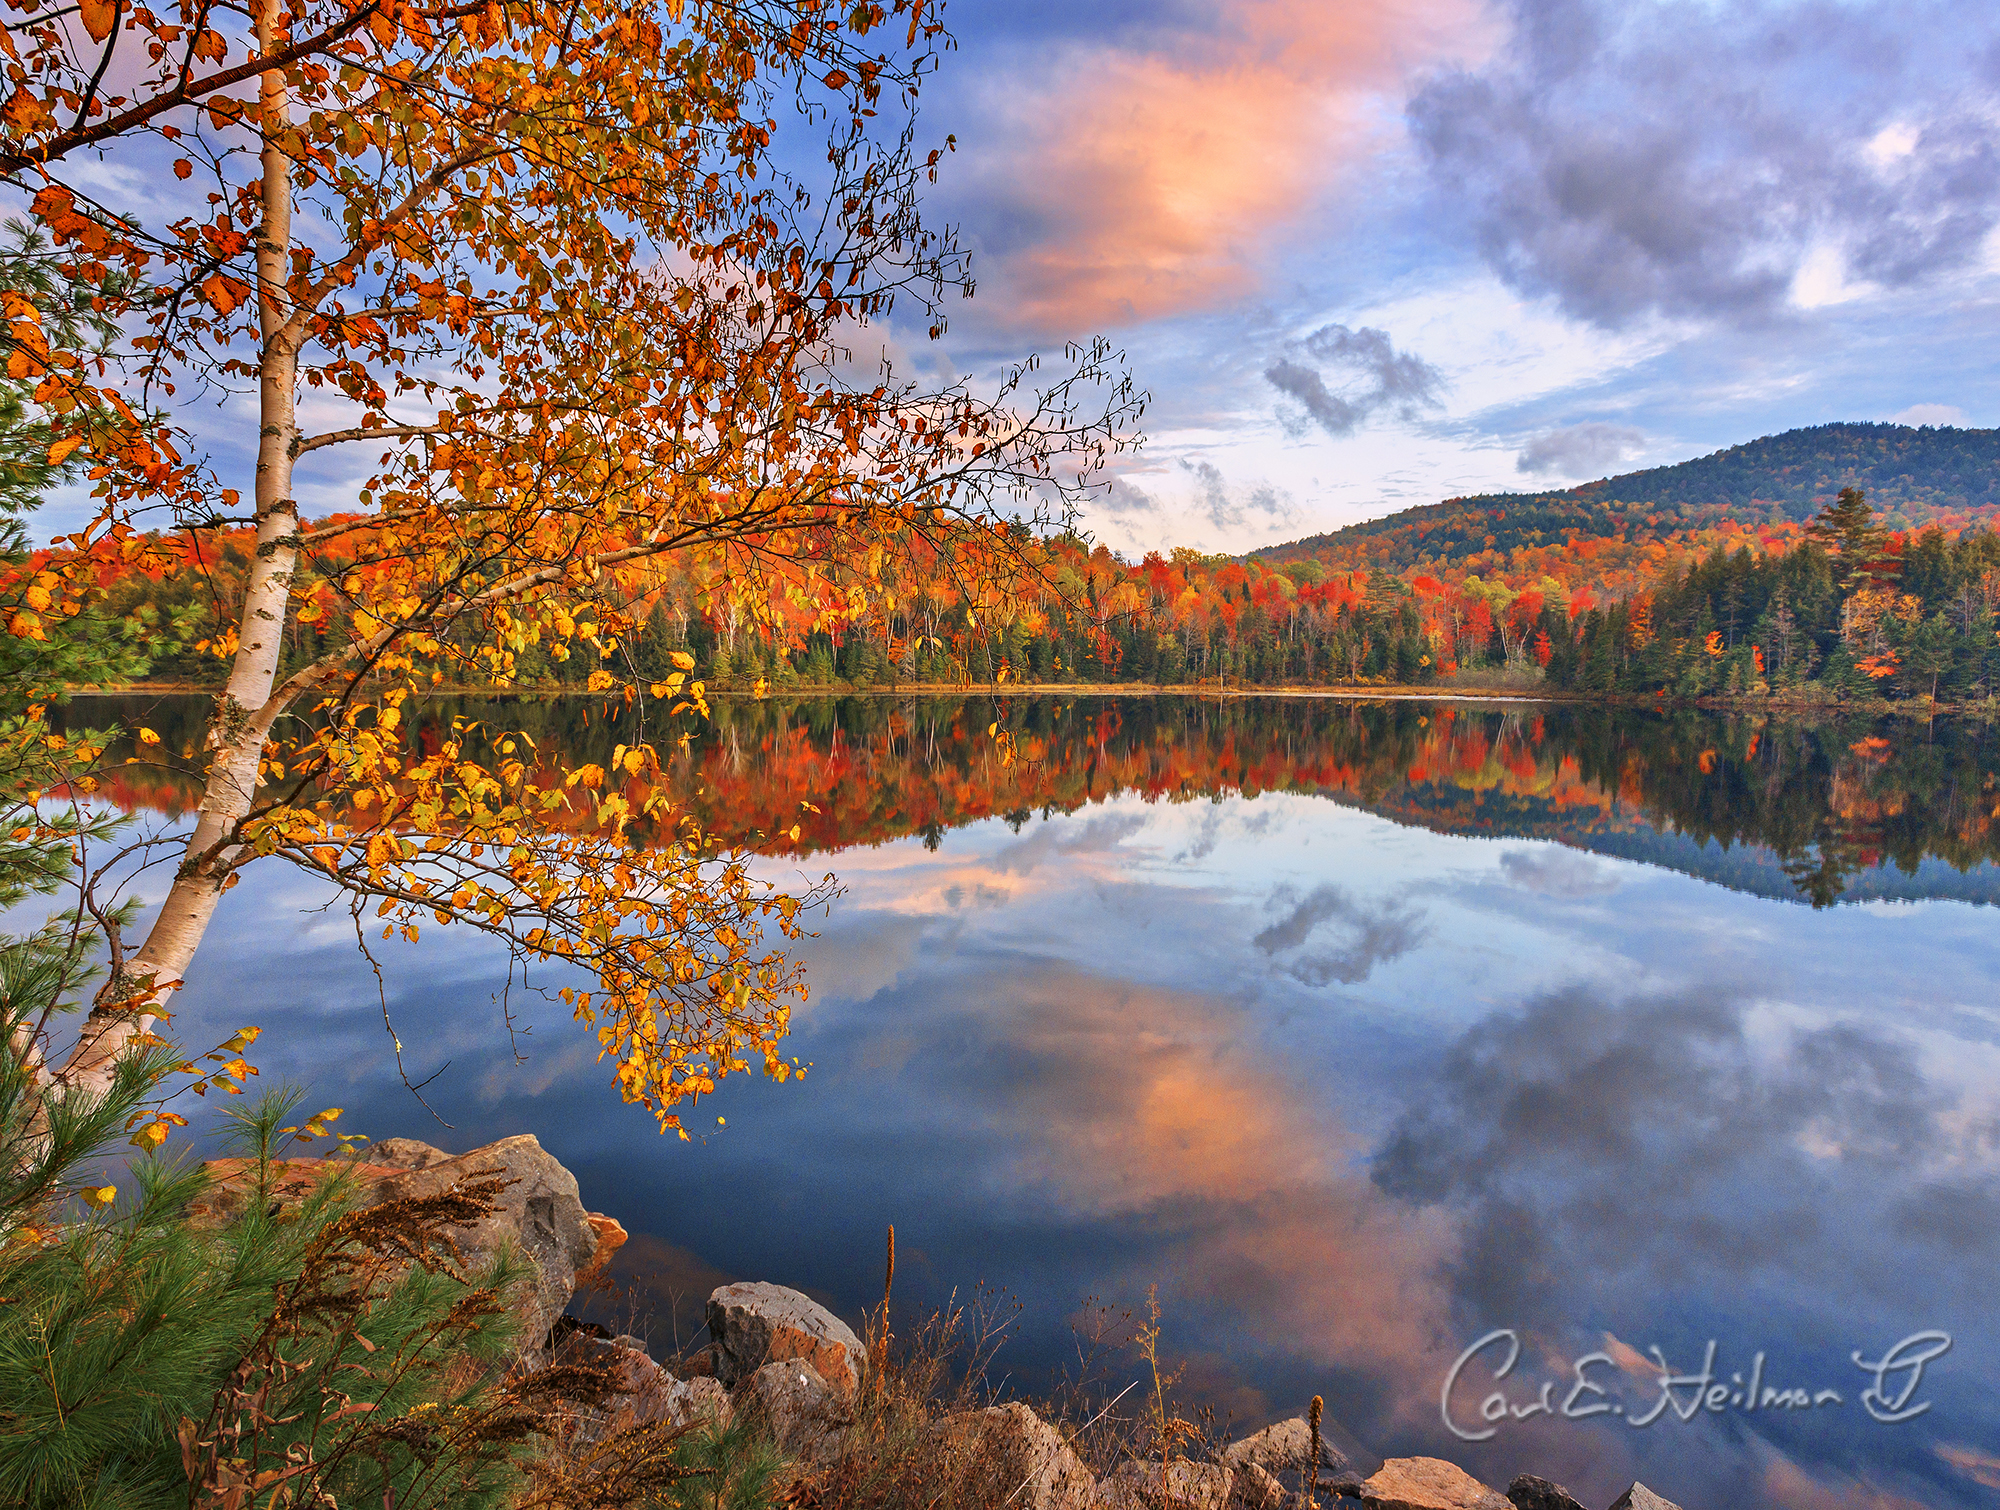 Tips for Seeing Fall Foliage in the Adirondacks